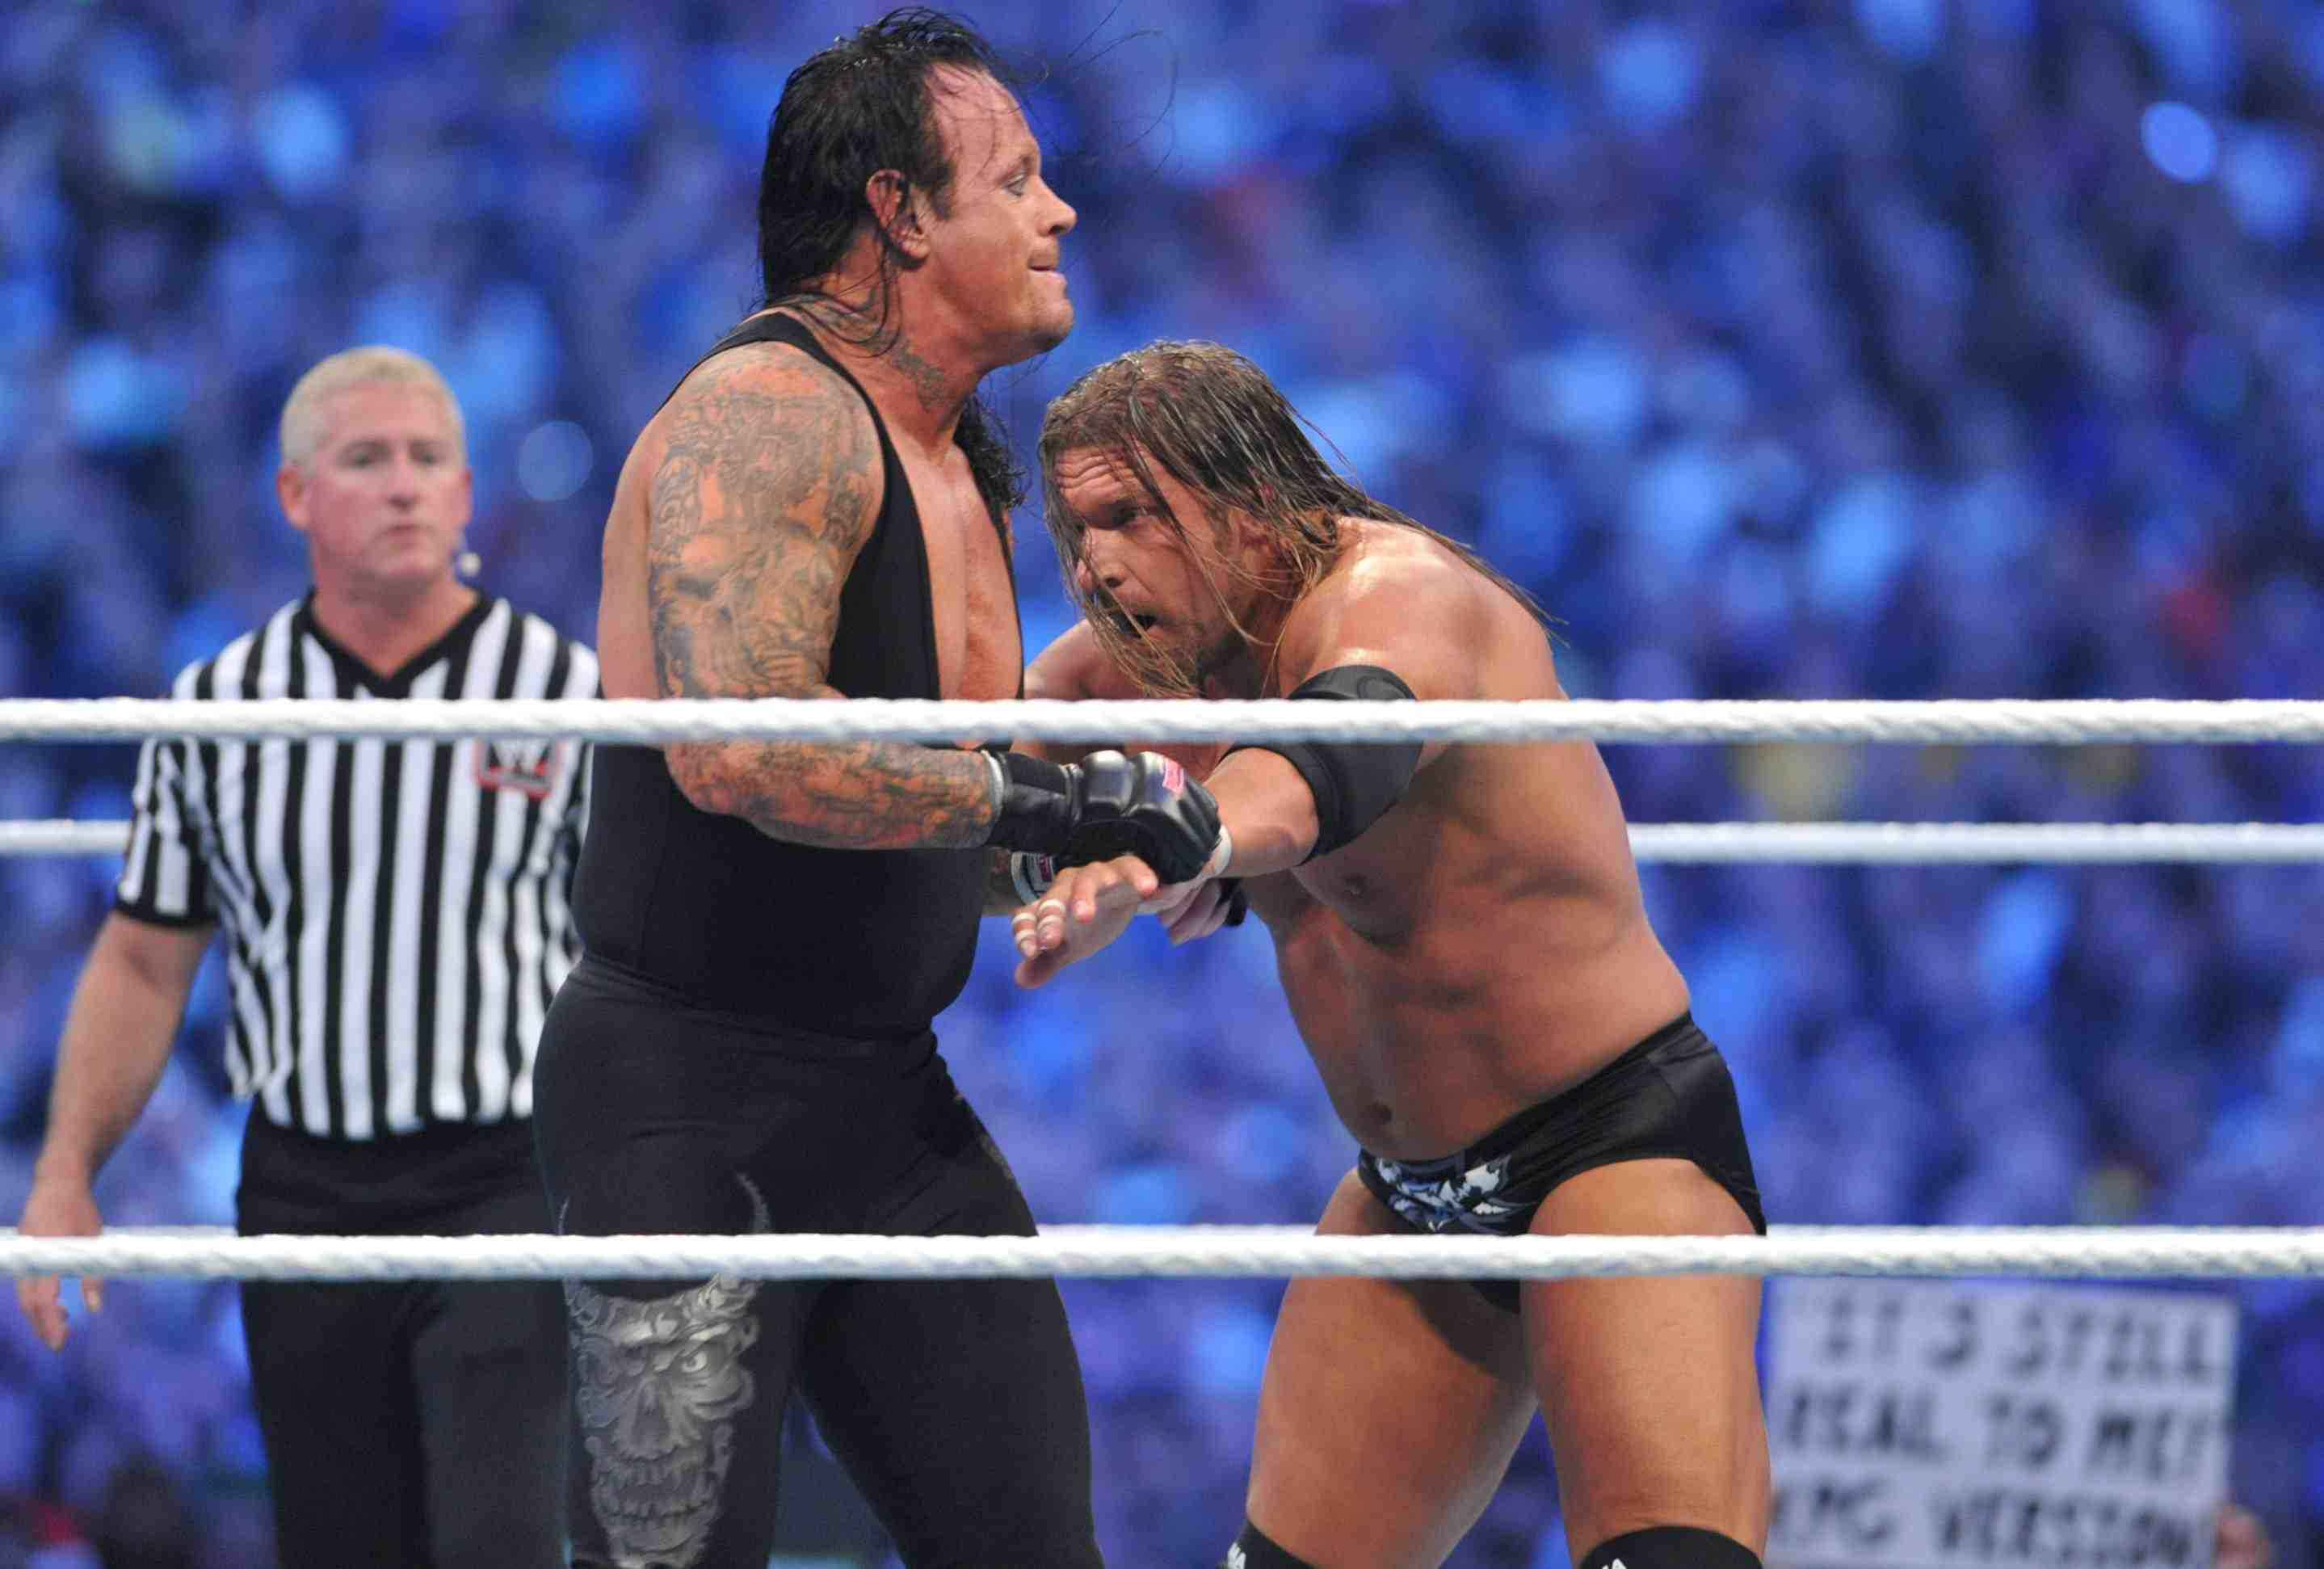 The Undertaker's Undefeated Streak at WrestleMania